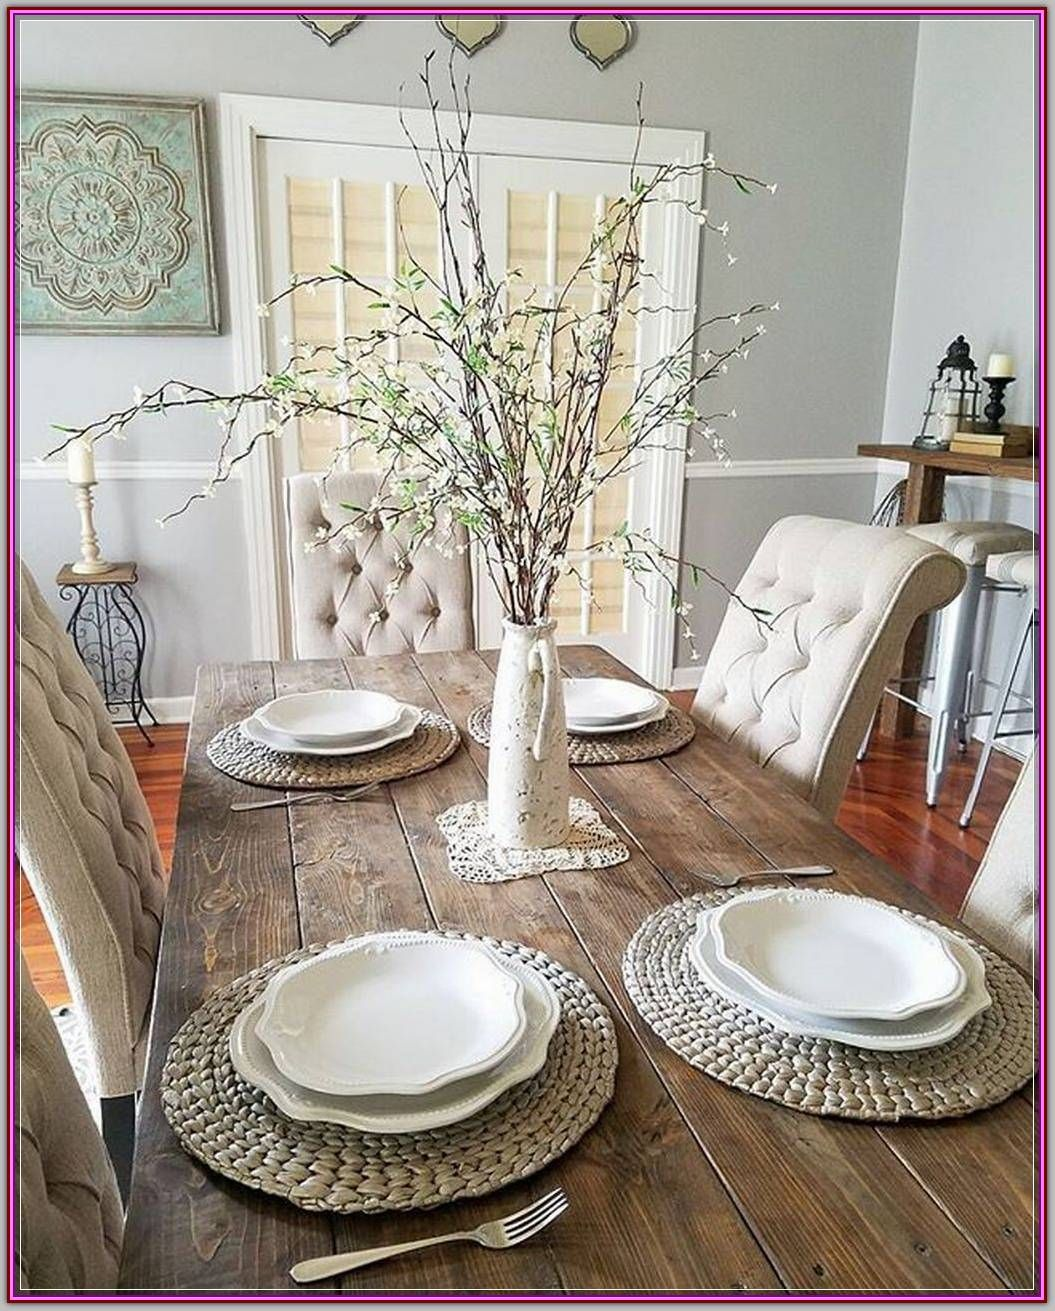 46 Popular Farmhouse Dining Room Design Ideas Trend 2019: Design A Perfect Dining Room Interior With These Easy Tips